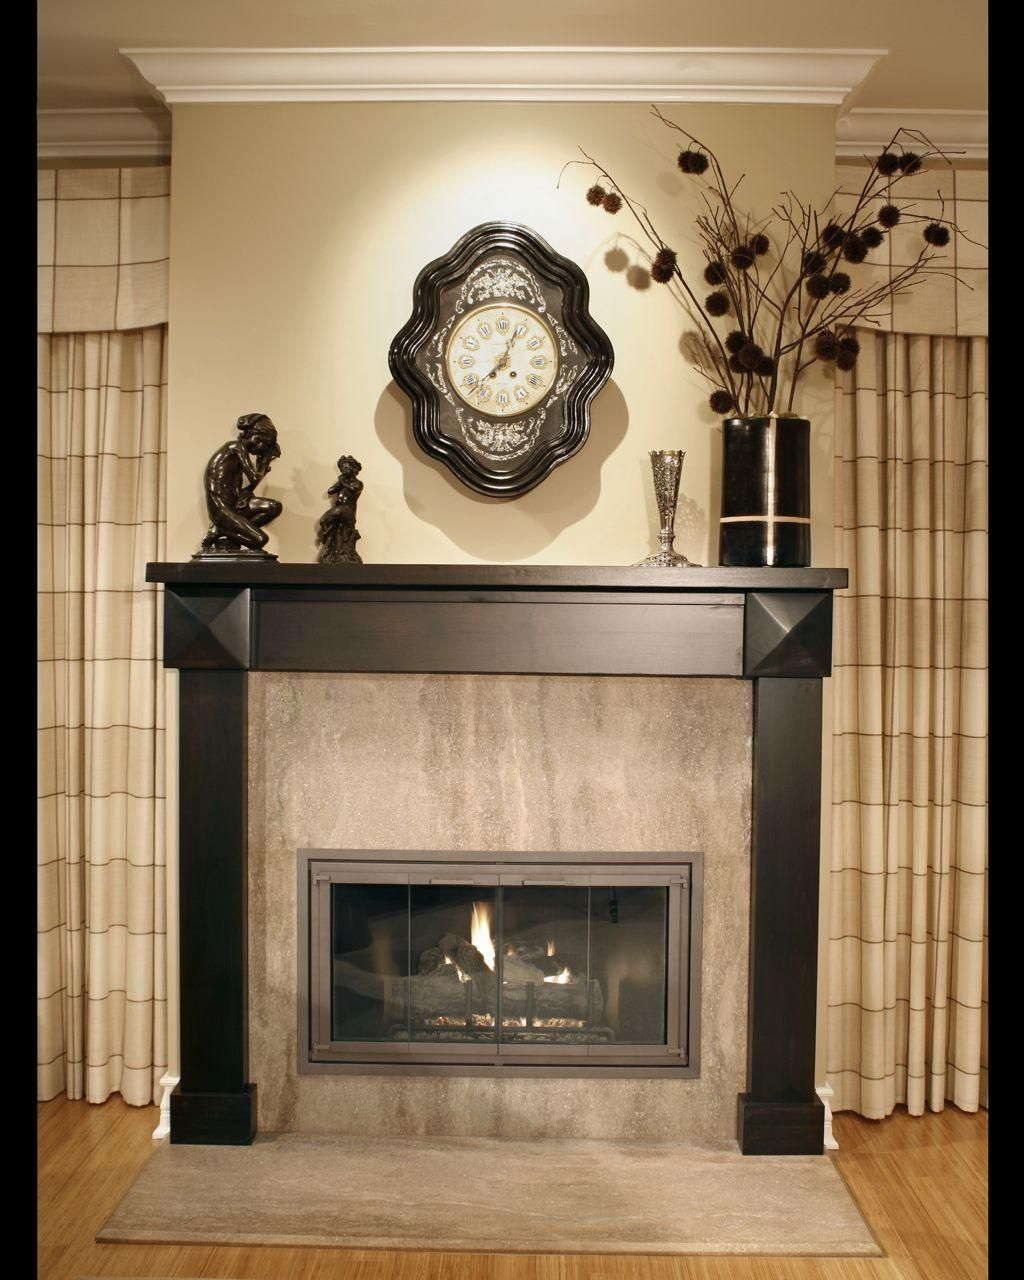 Captivating wall mounted fireplace ideas beautiful wall for Over fireplace decor